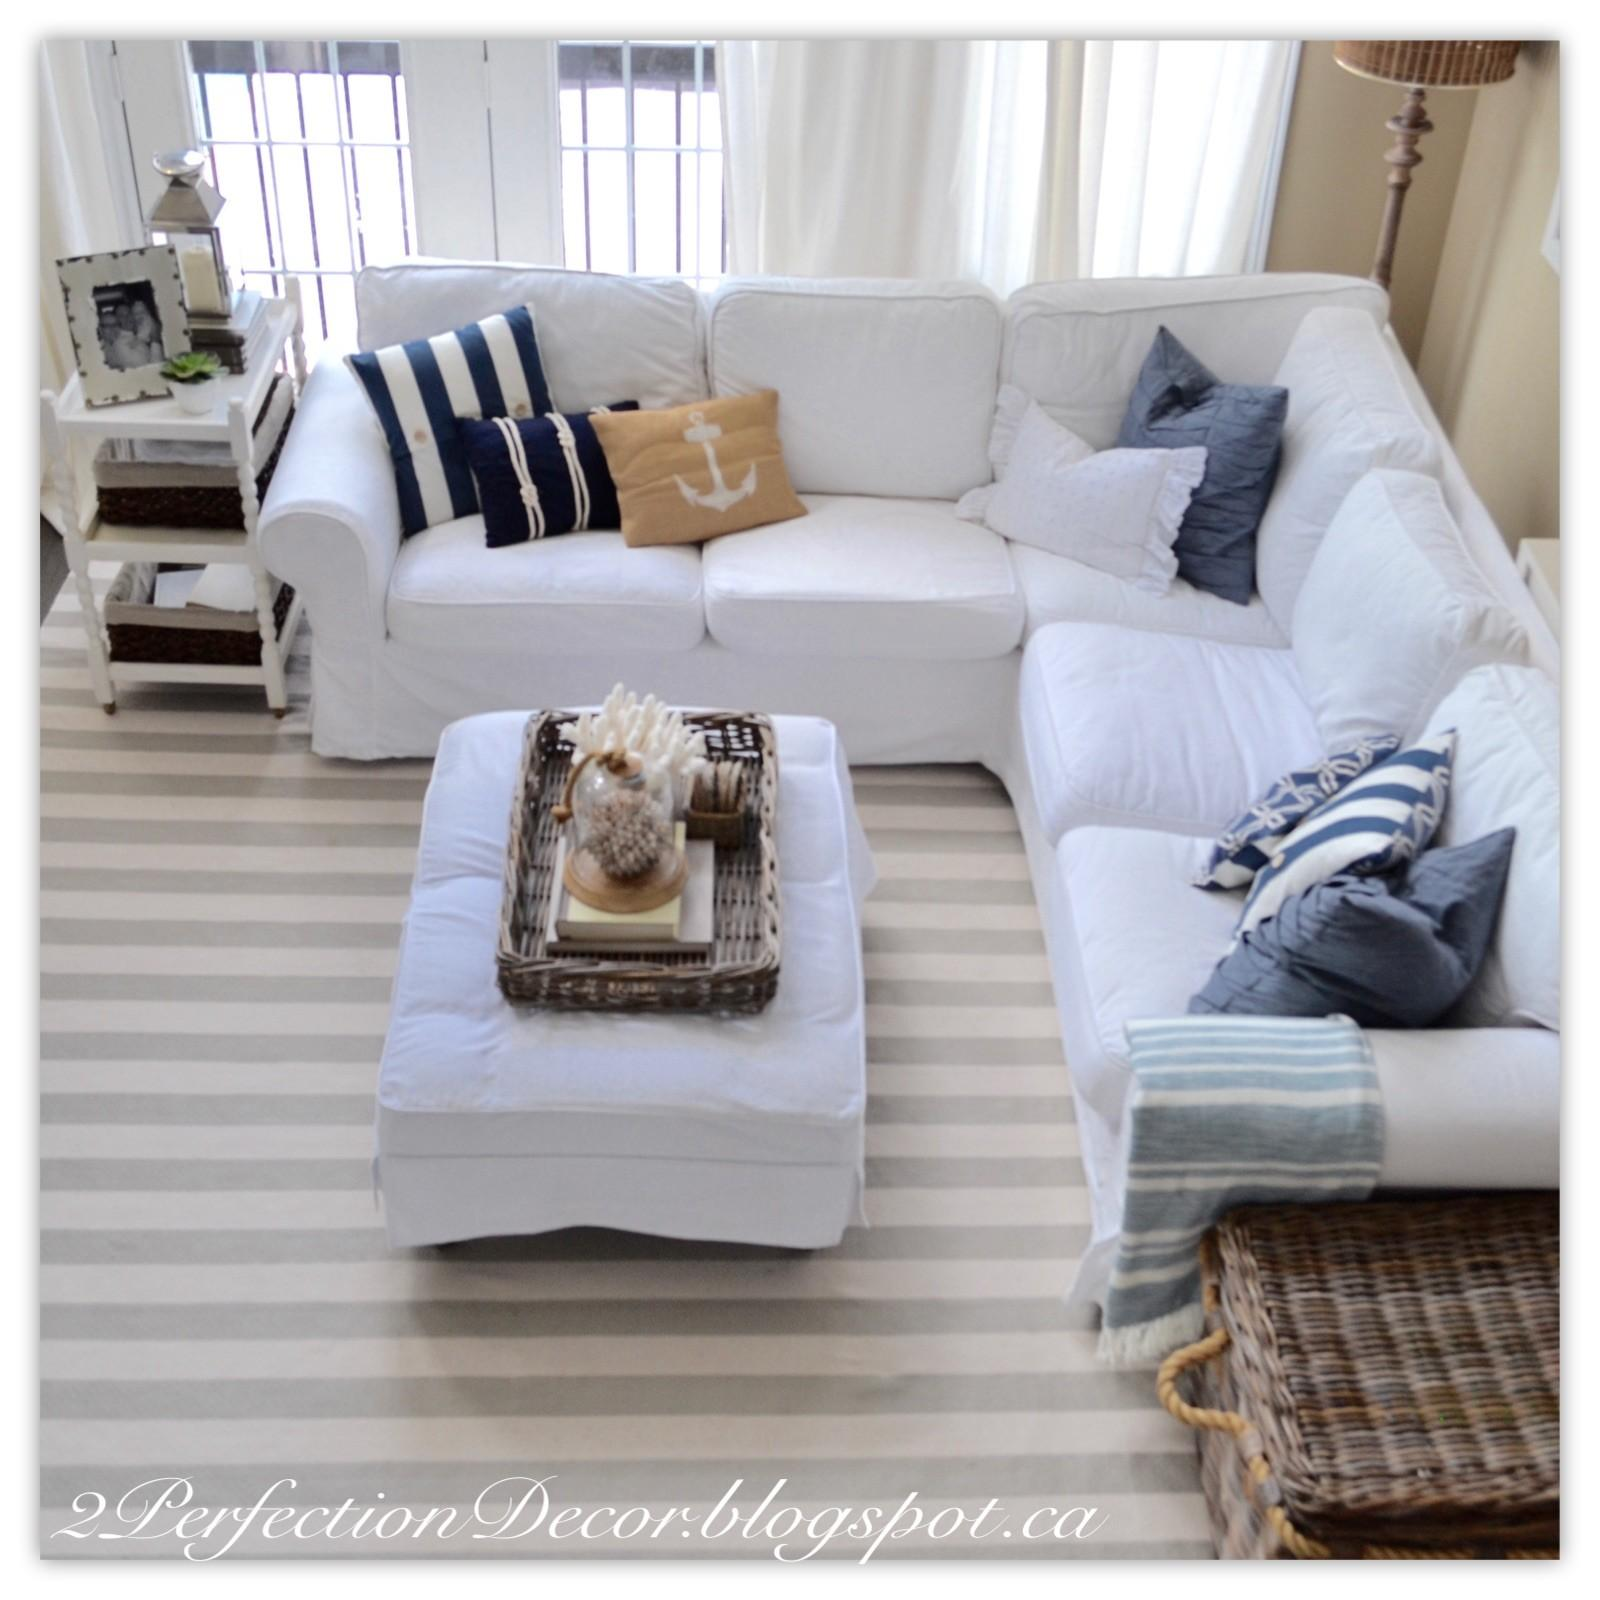 2perfection Decor Family Room Summer